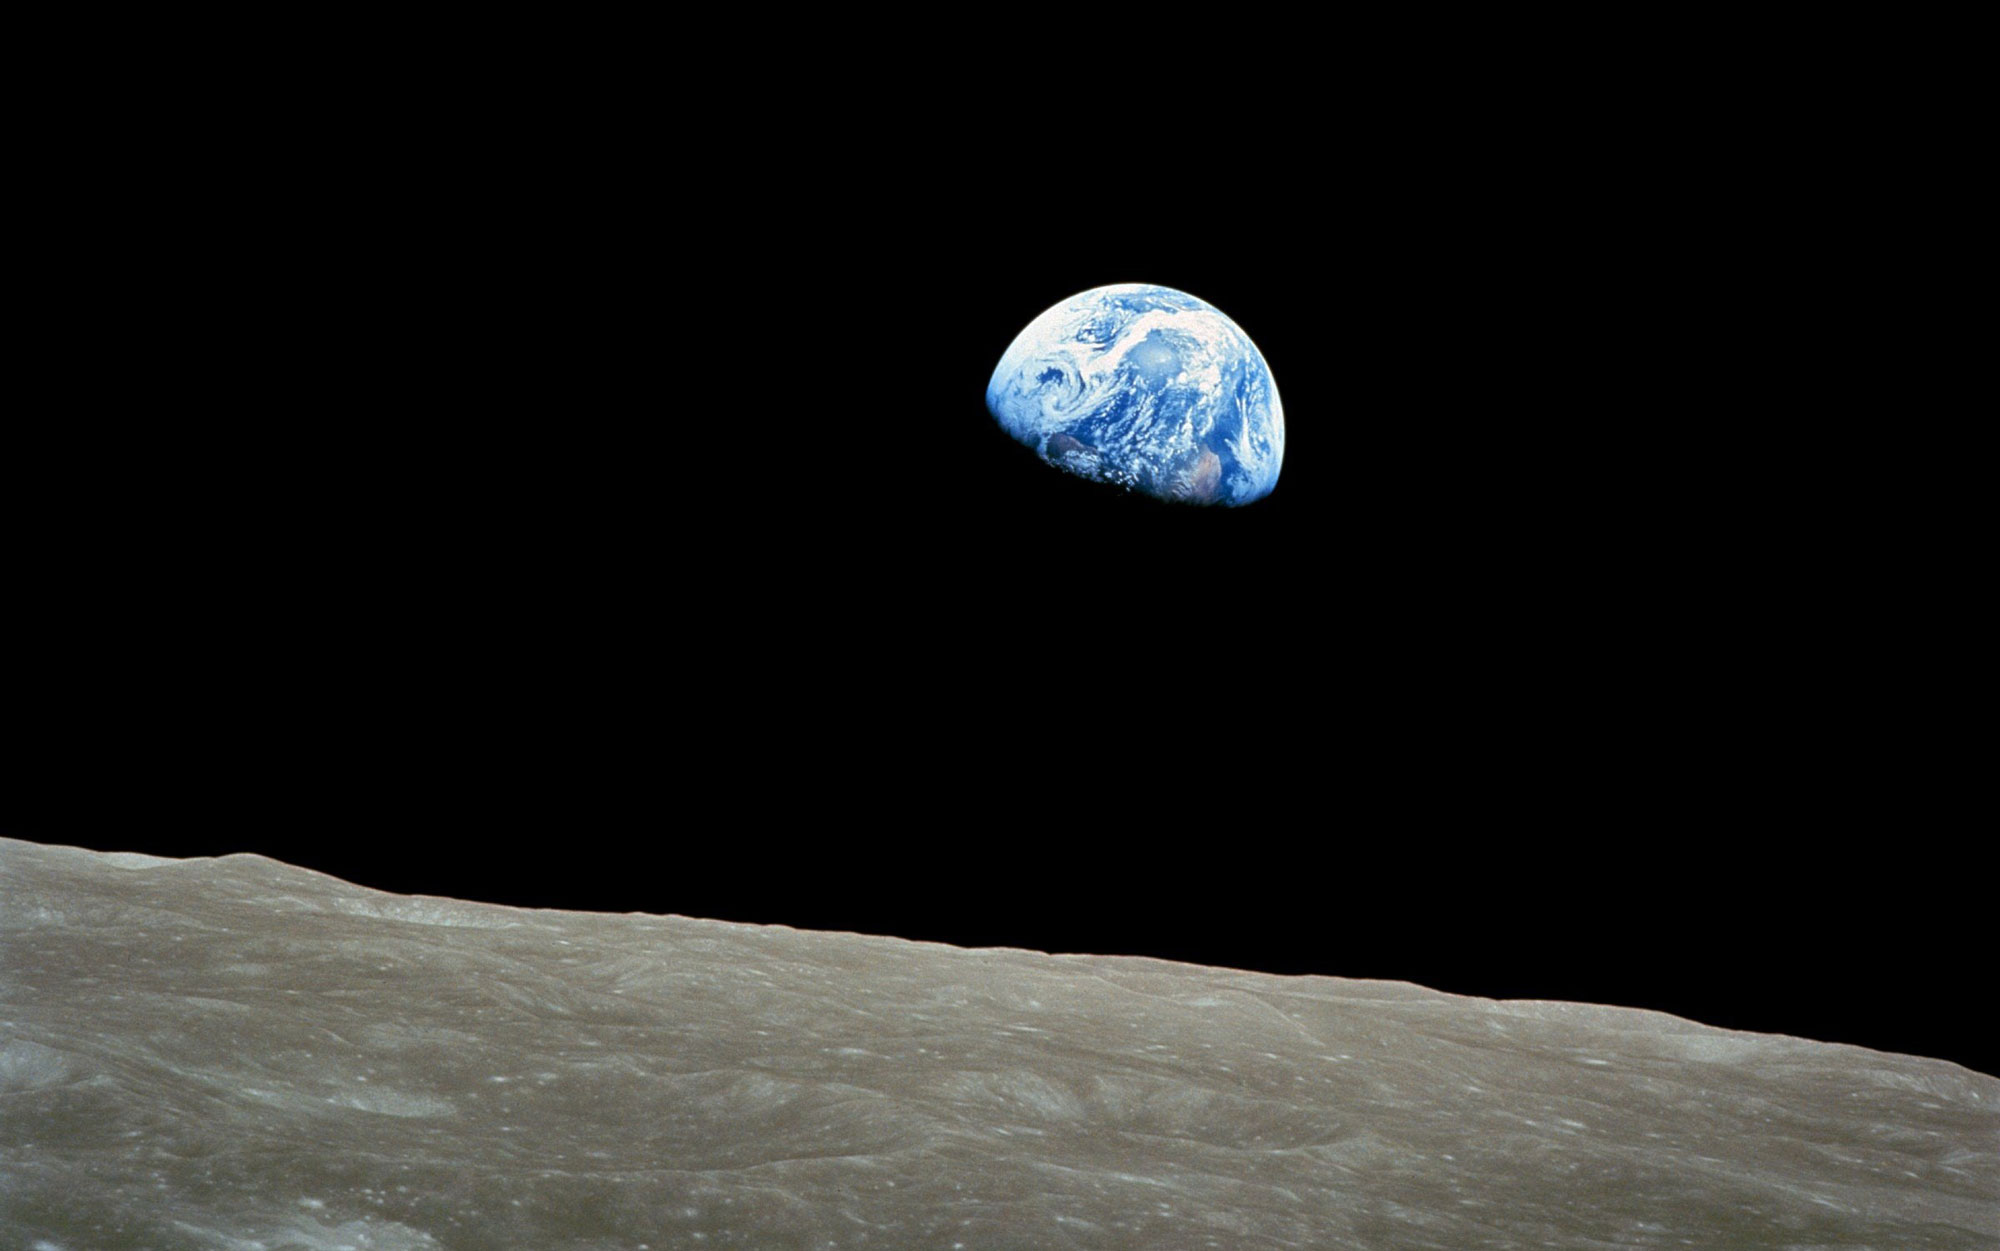 Earth as viewed from the moon